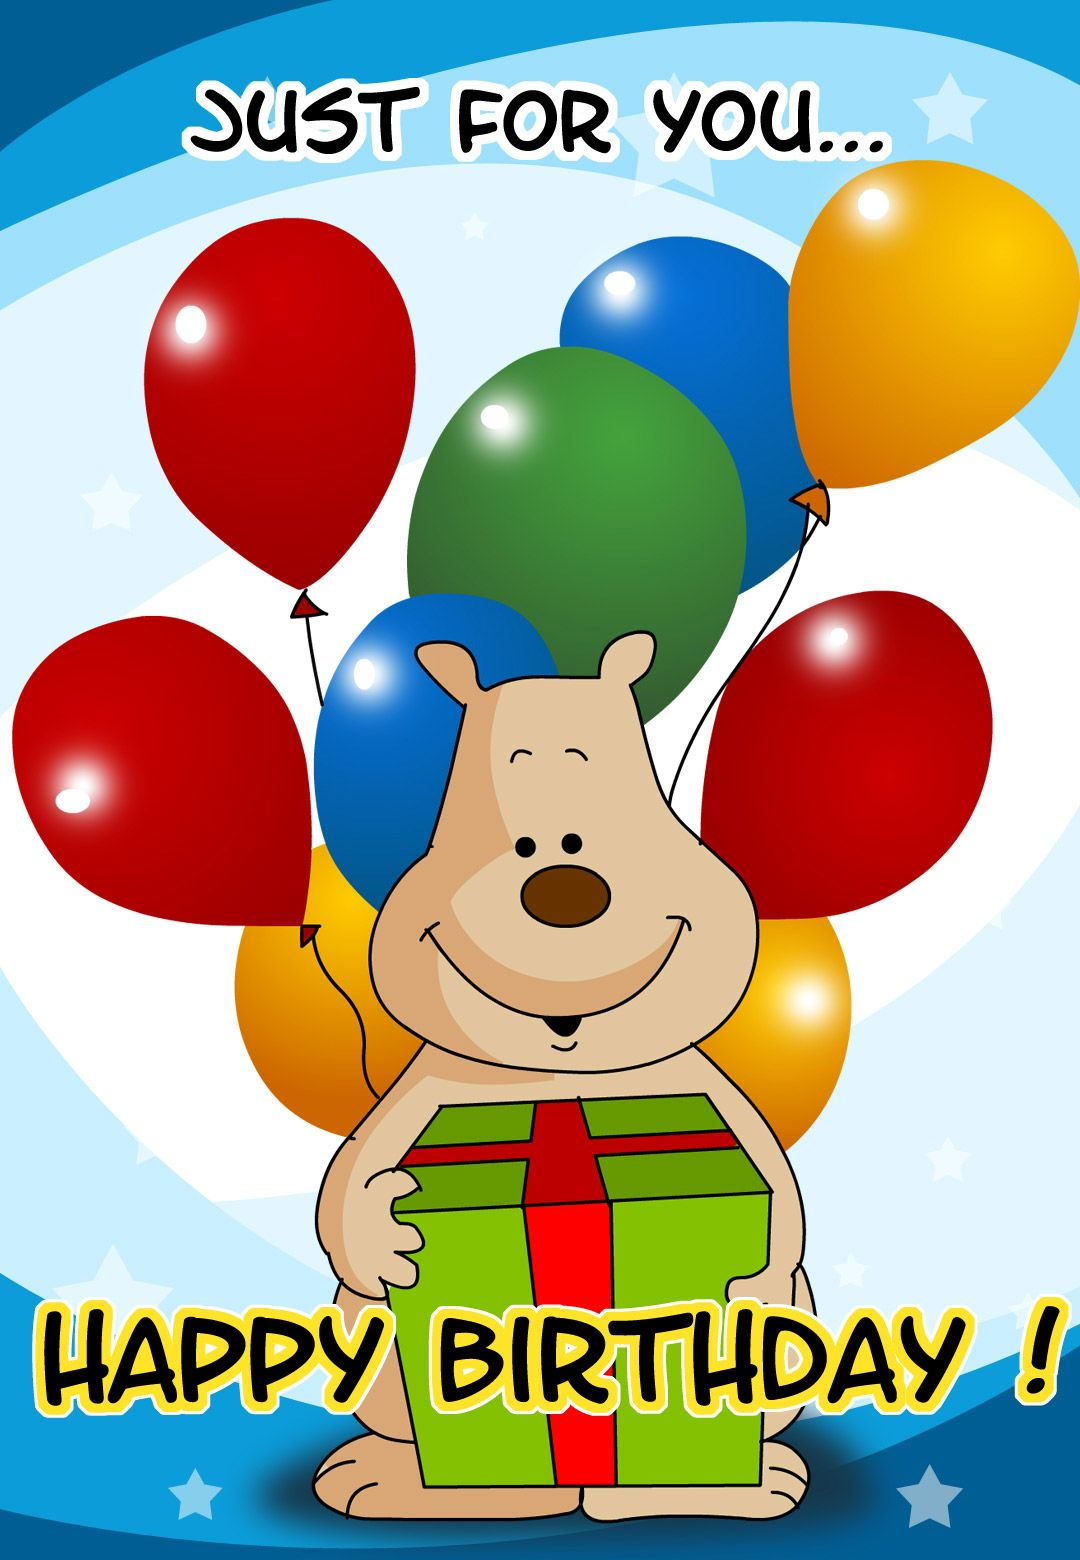 Animated Birthday Birthday Greetings Birthday Wishes Happy - Free childrens animated birthday cards